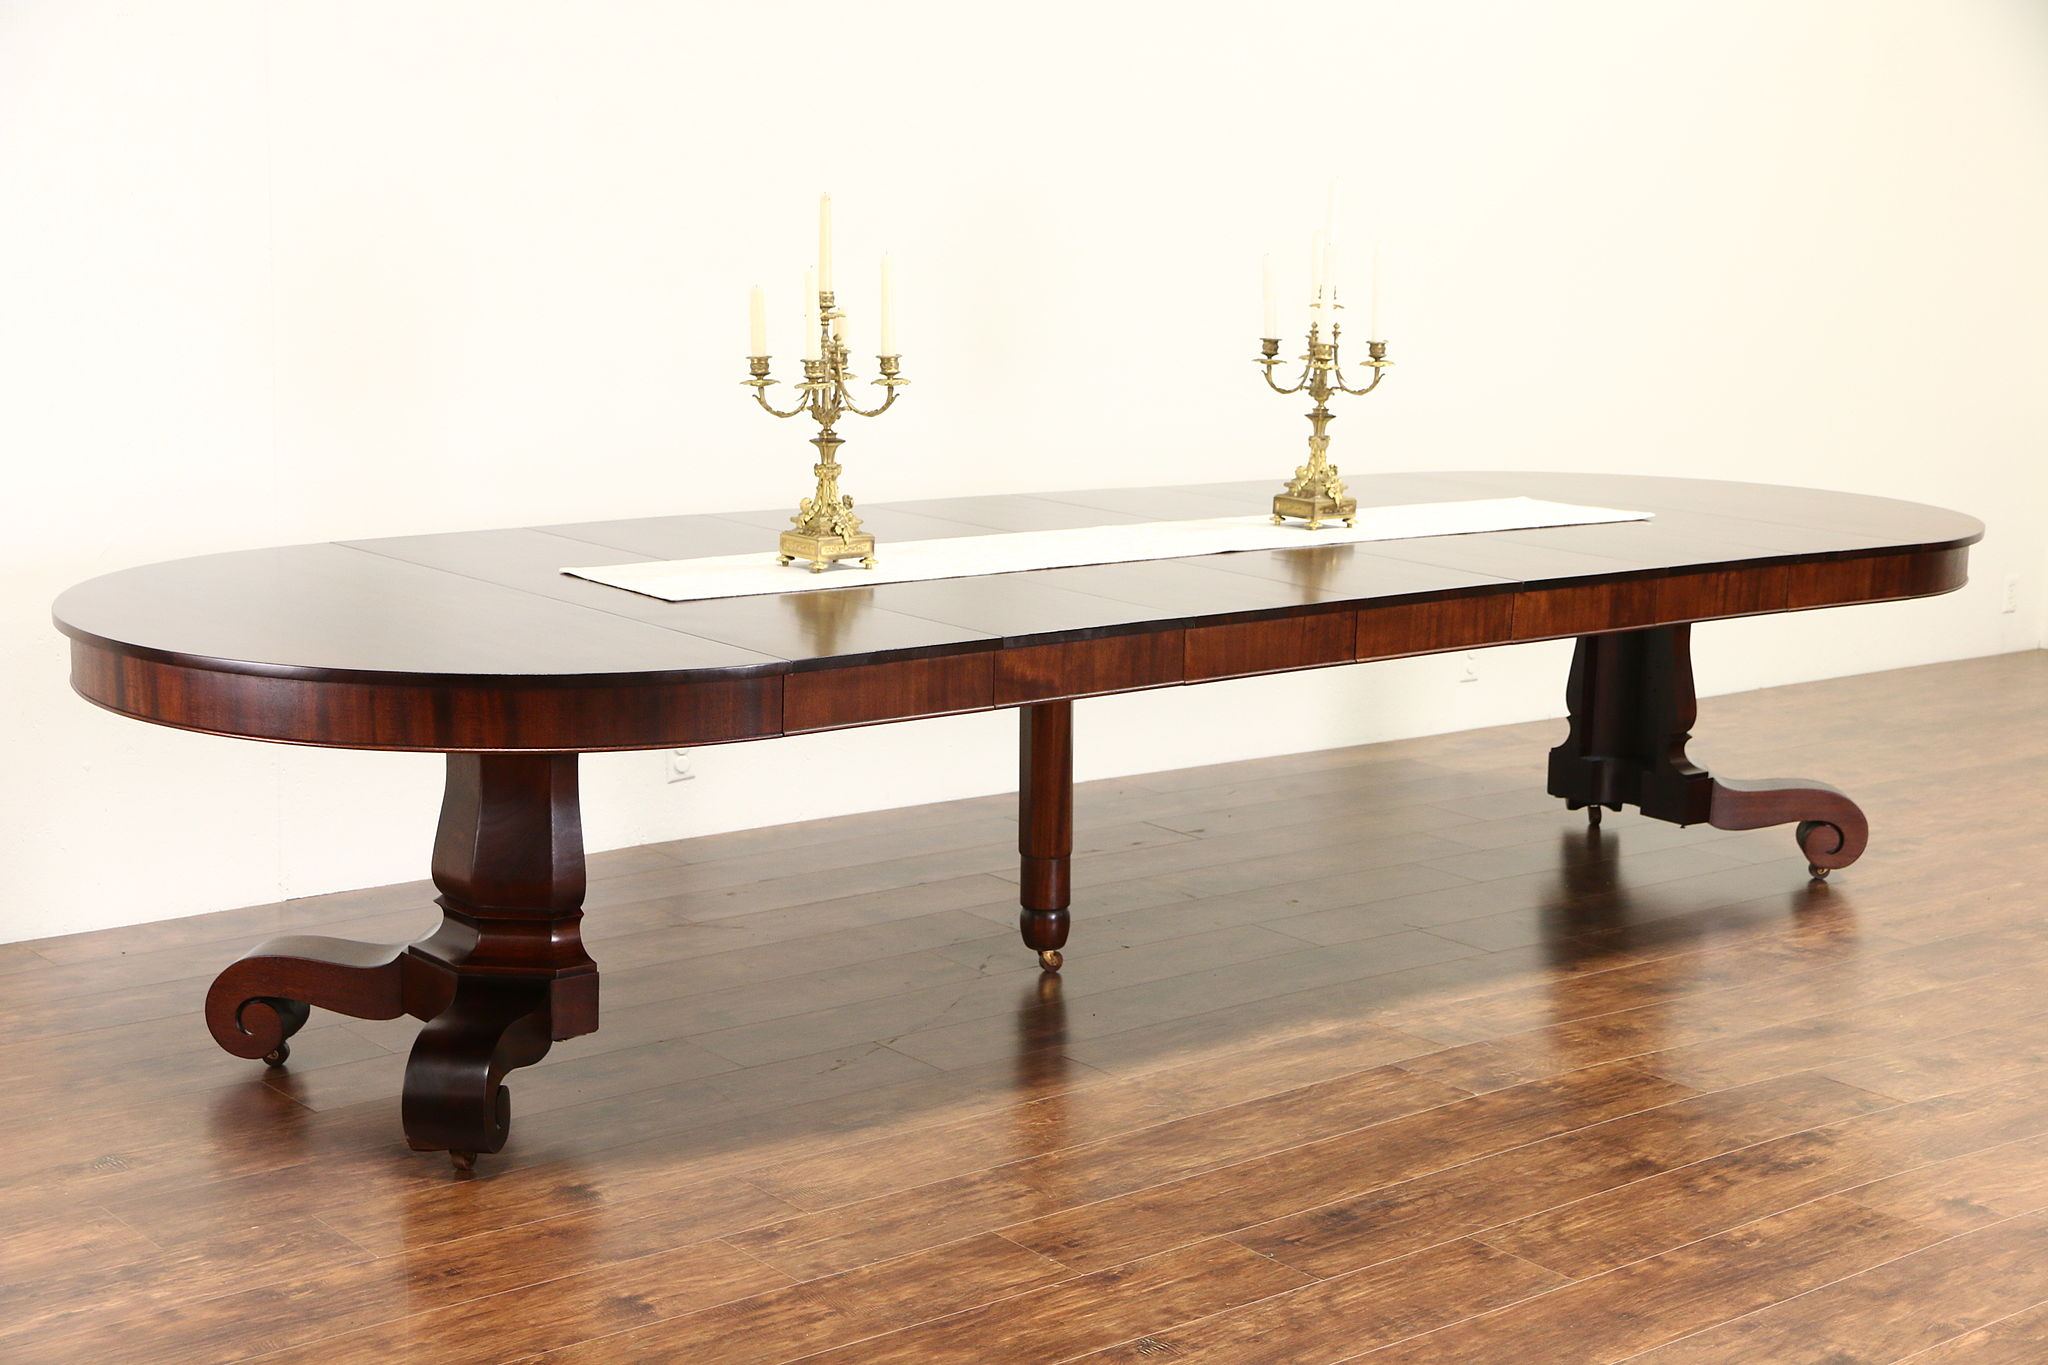 Empire mahogany 1910 antique 54 round dining table 7 leaves extends 13